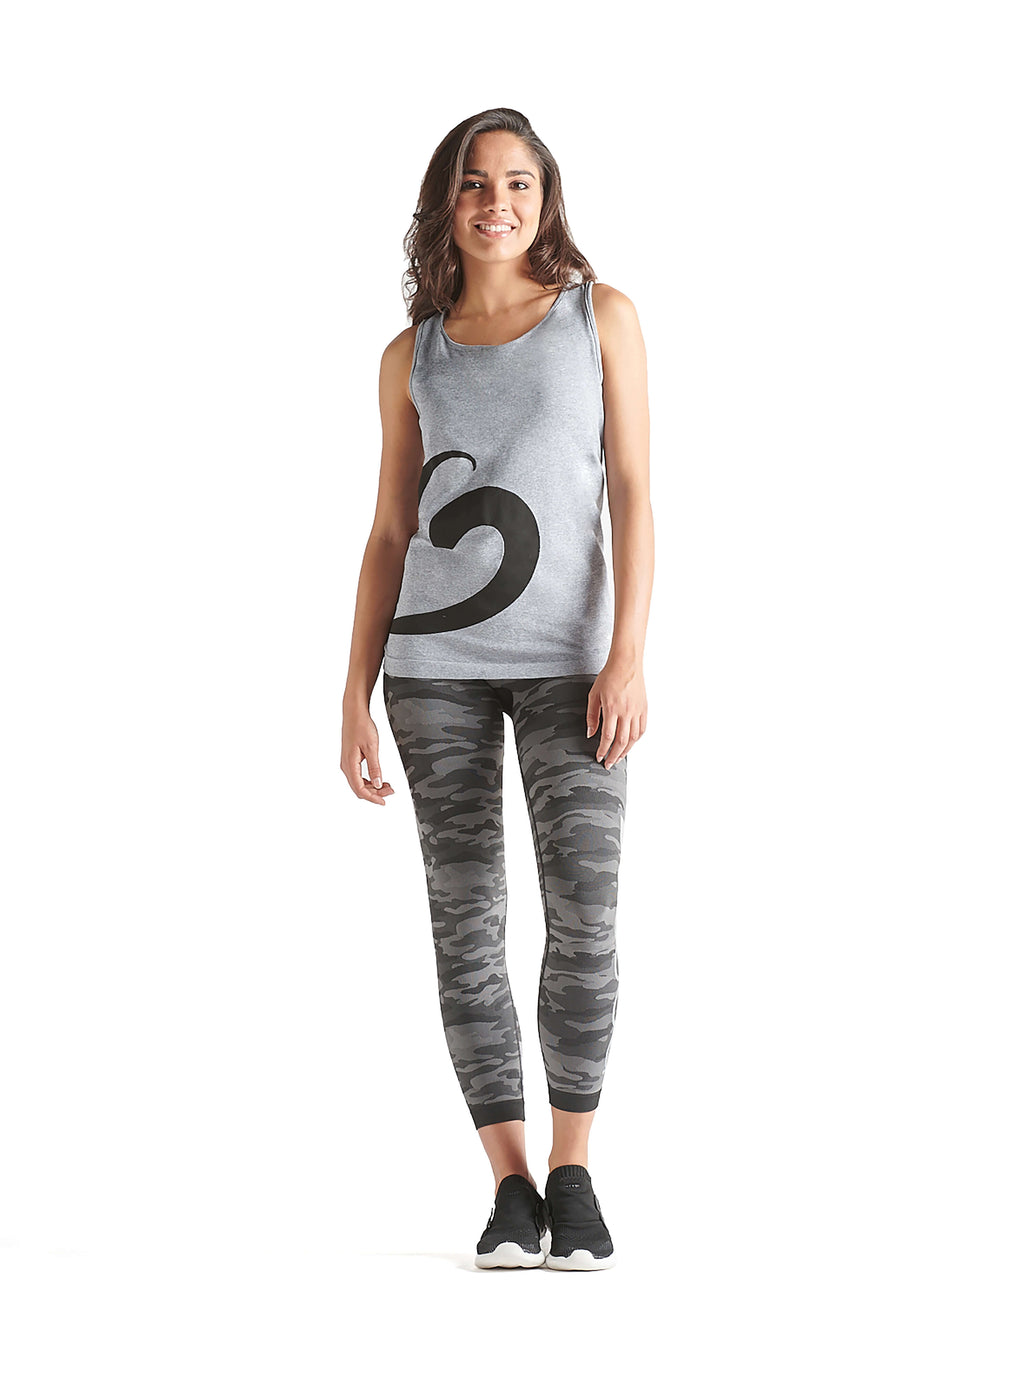 New! BeFit Keep It Moving Sport Leggings Camouflage